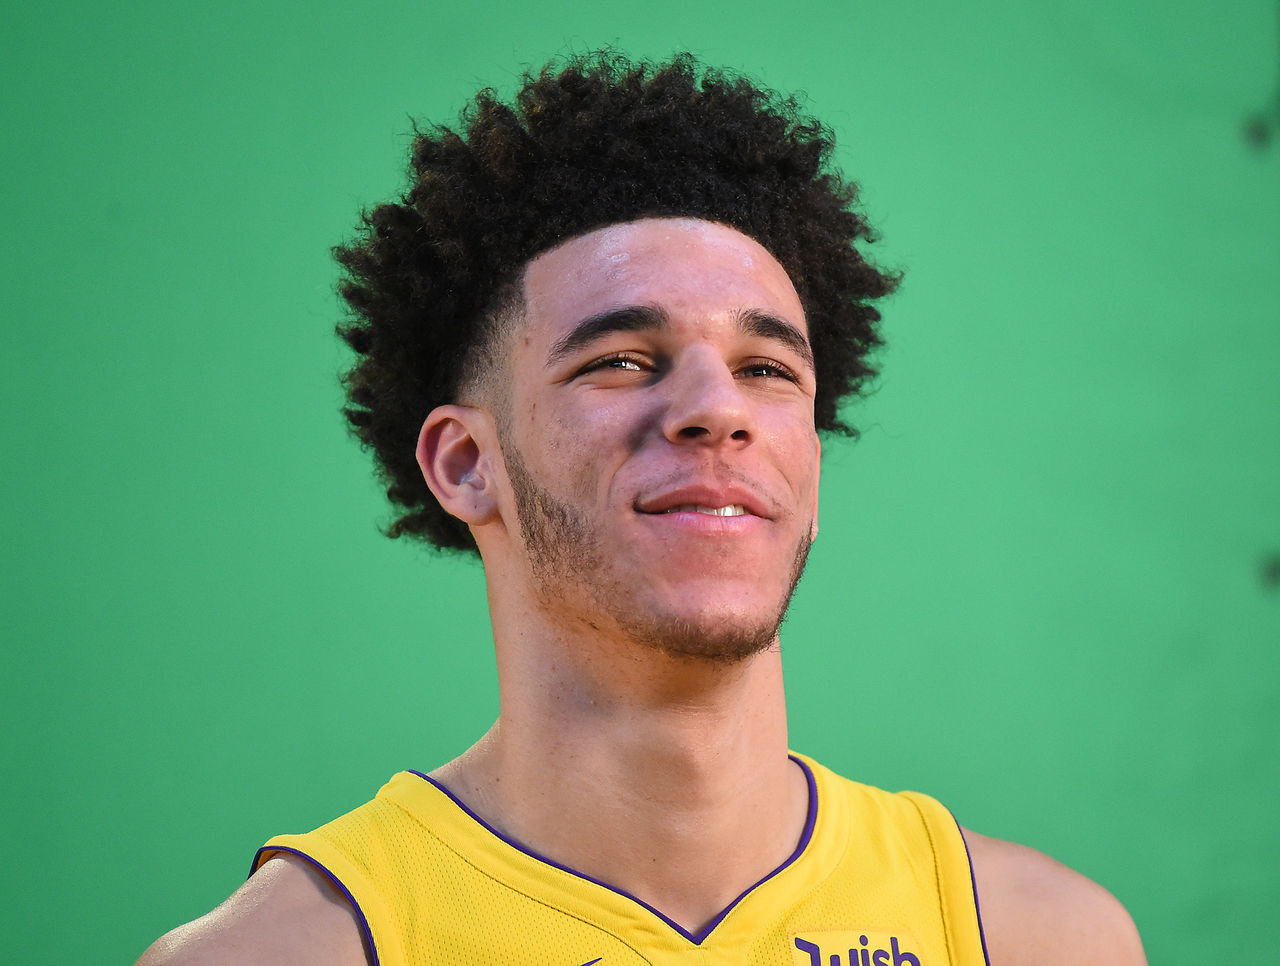 Cropped_2017-09-25t225707z_1604030203_nocid_rtrmadp_3_nba-los-angeles-lakers-media-day